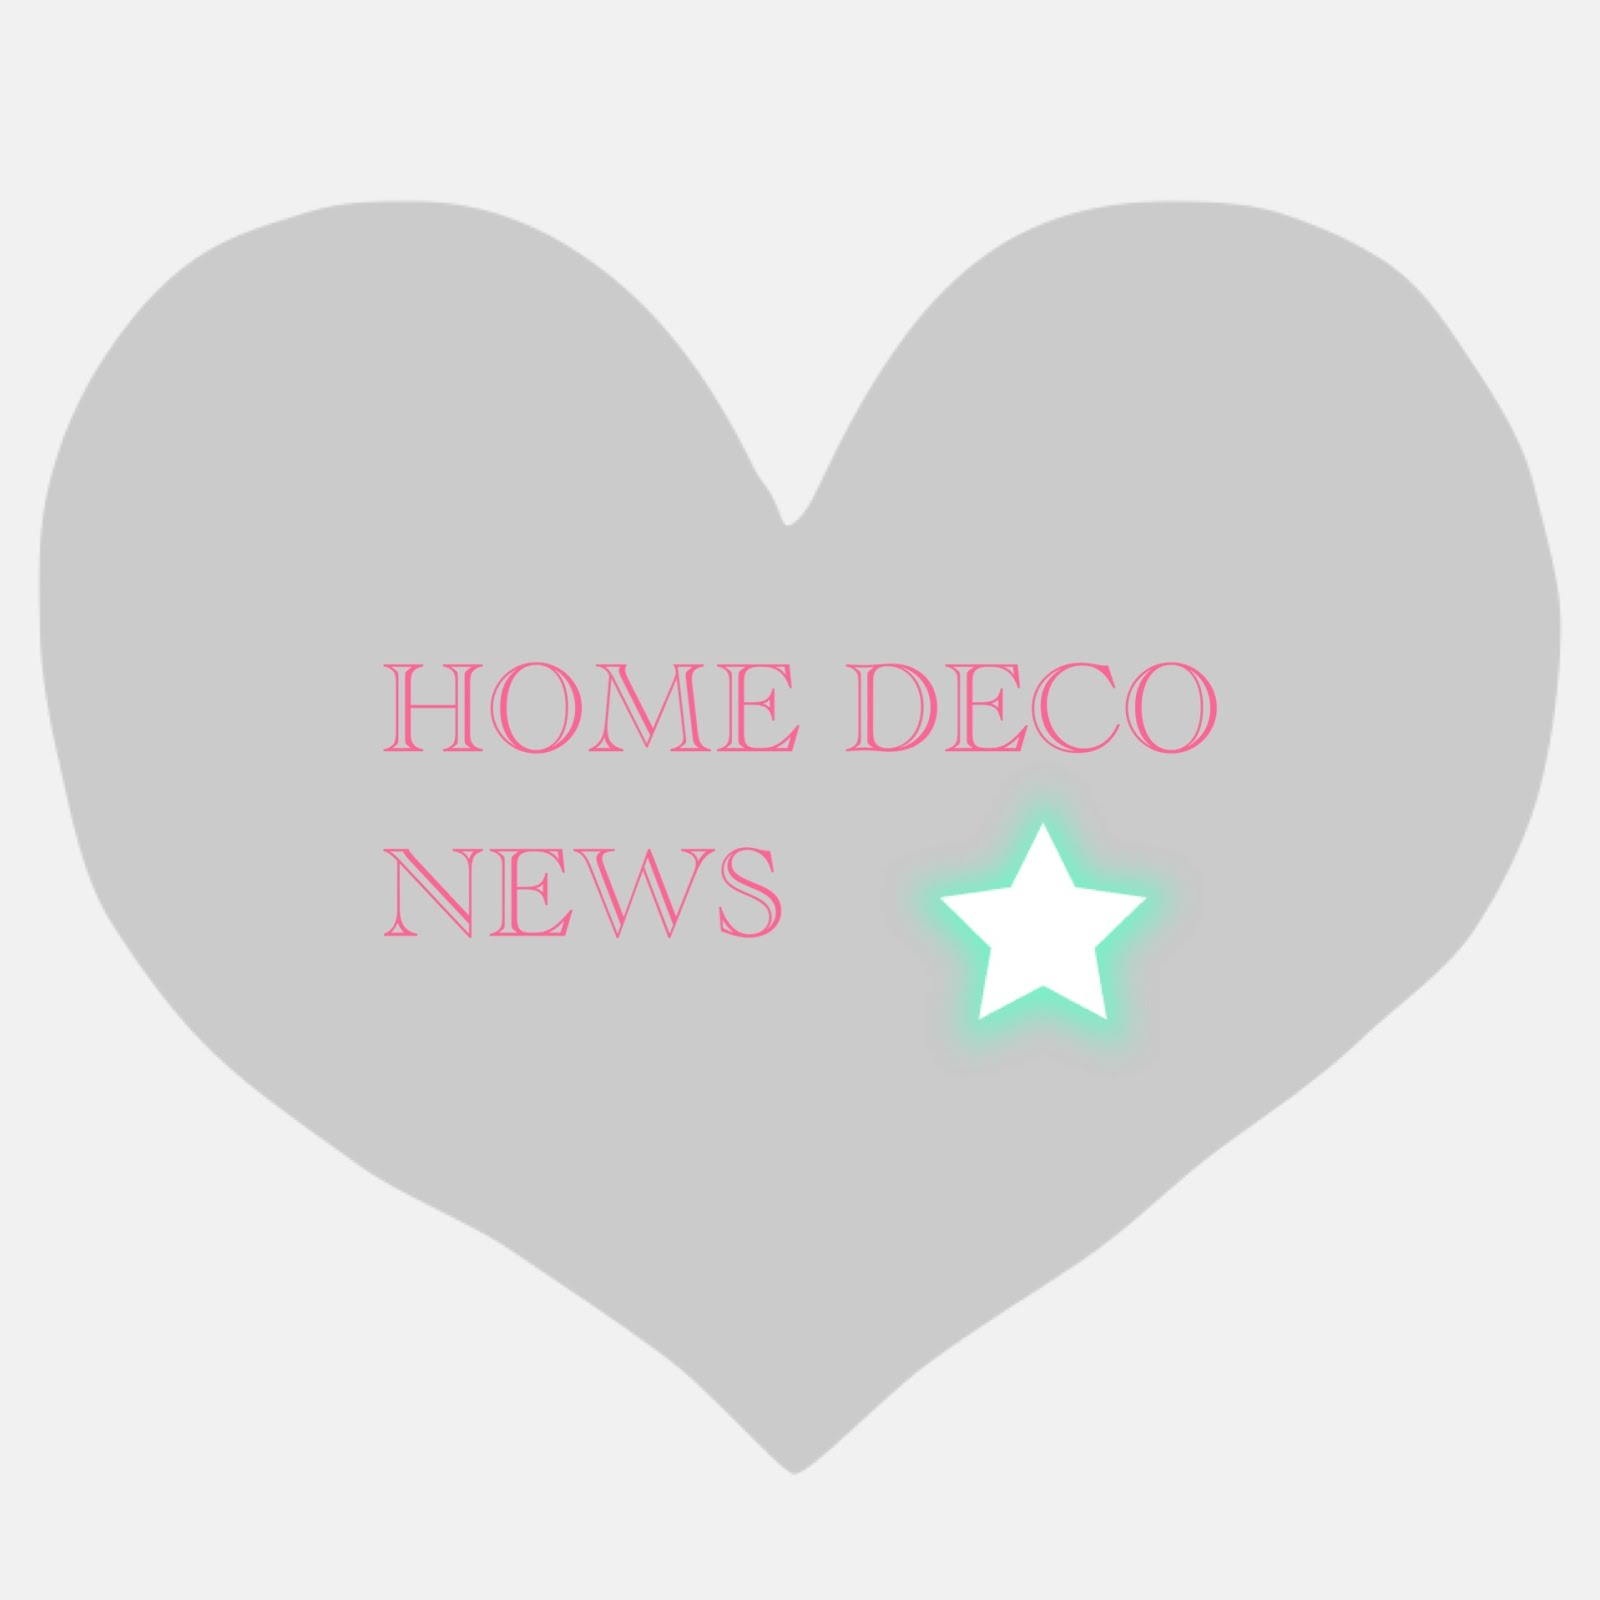 SHOP HOME DECO